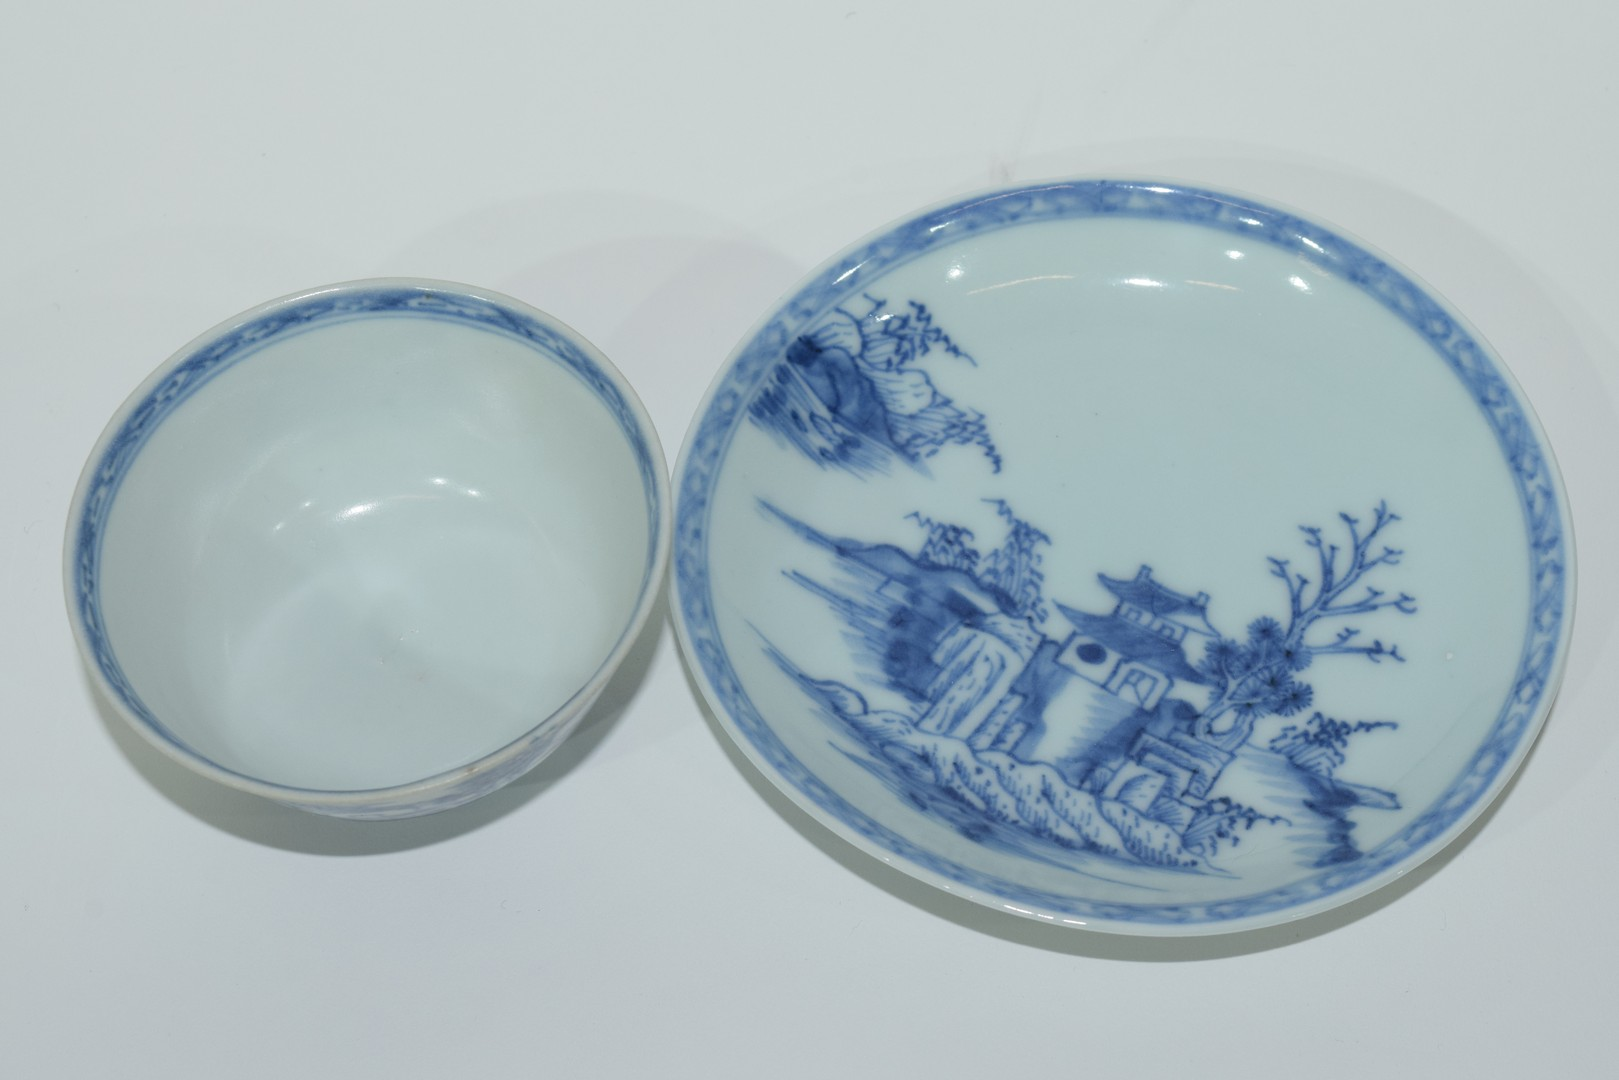 18th century Chinese porcelain Nanking Cargo tea bowl and saucer - Image 5 of 15